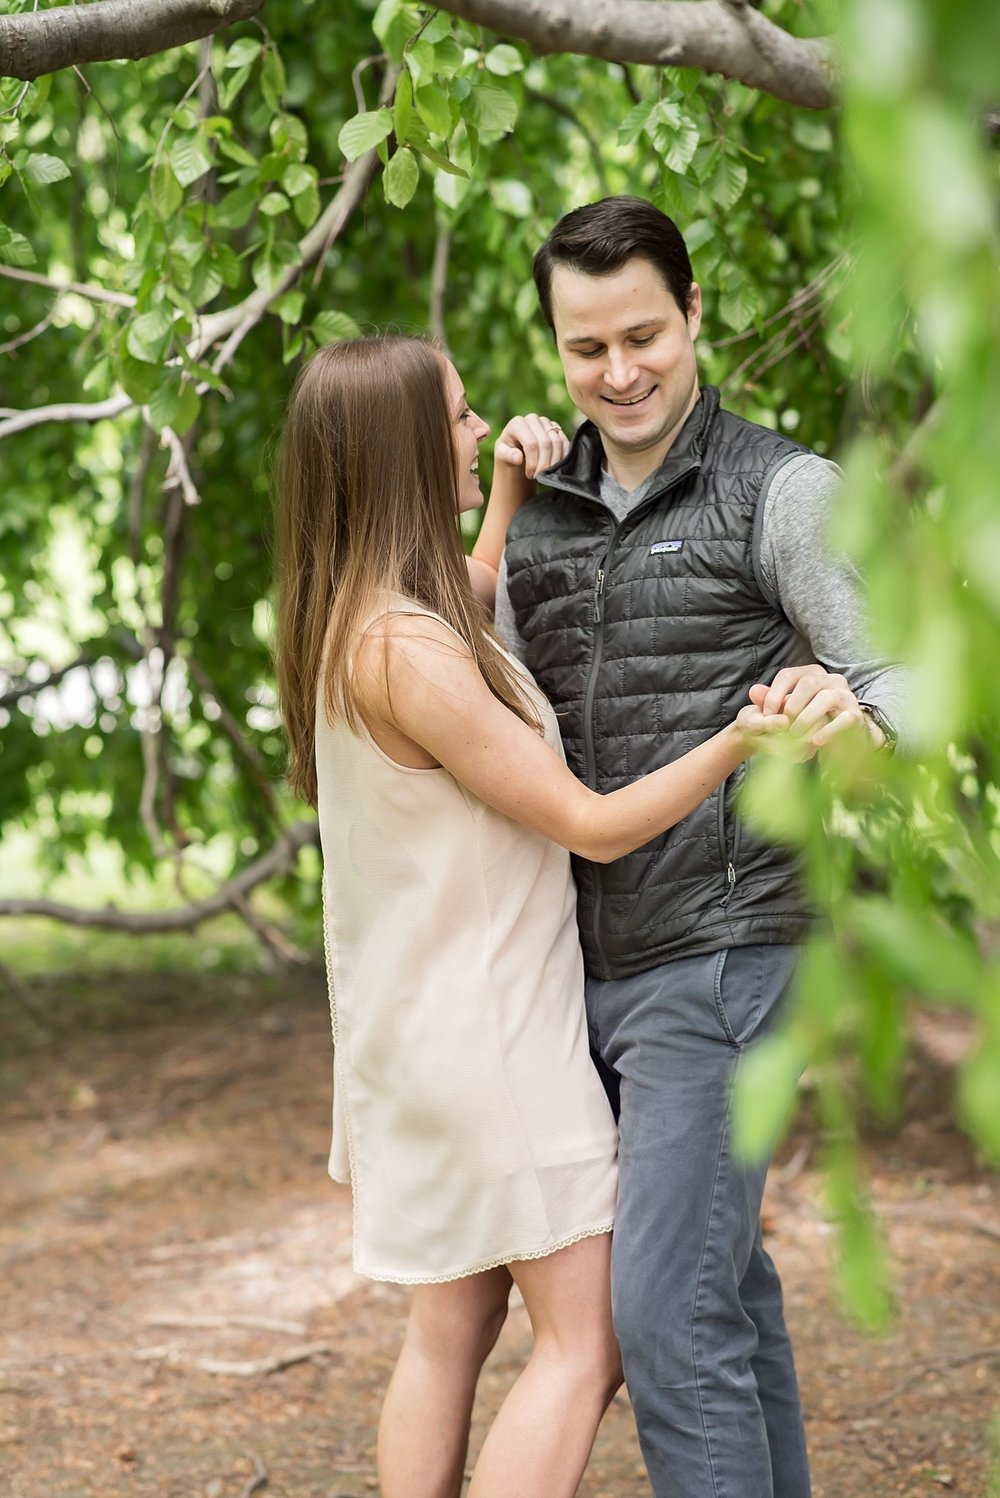 Dancing at Larz Anderson Park Engagement session